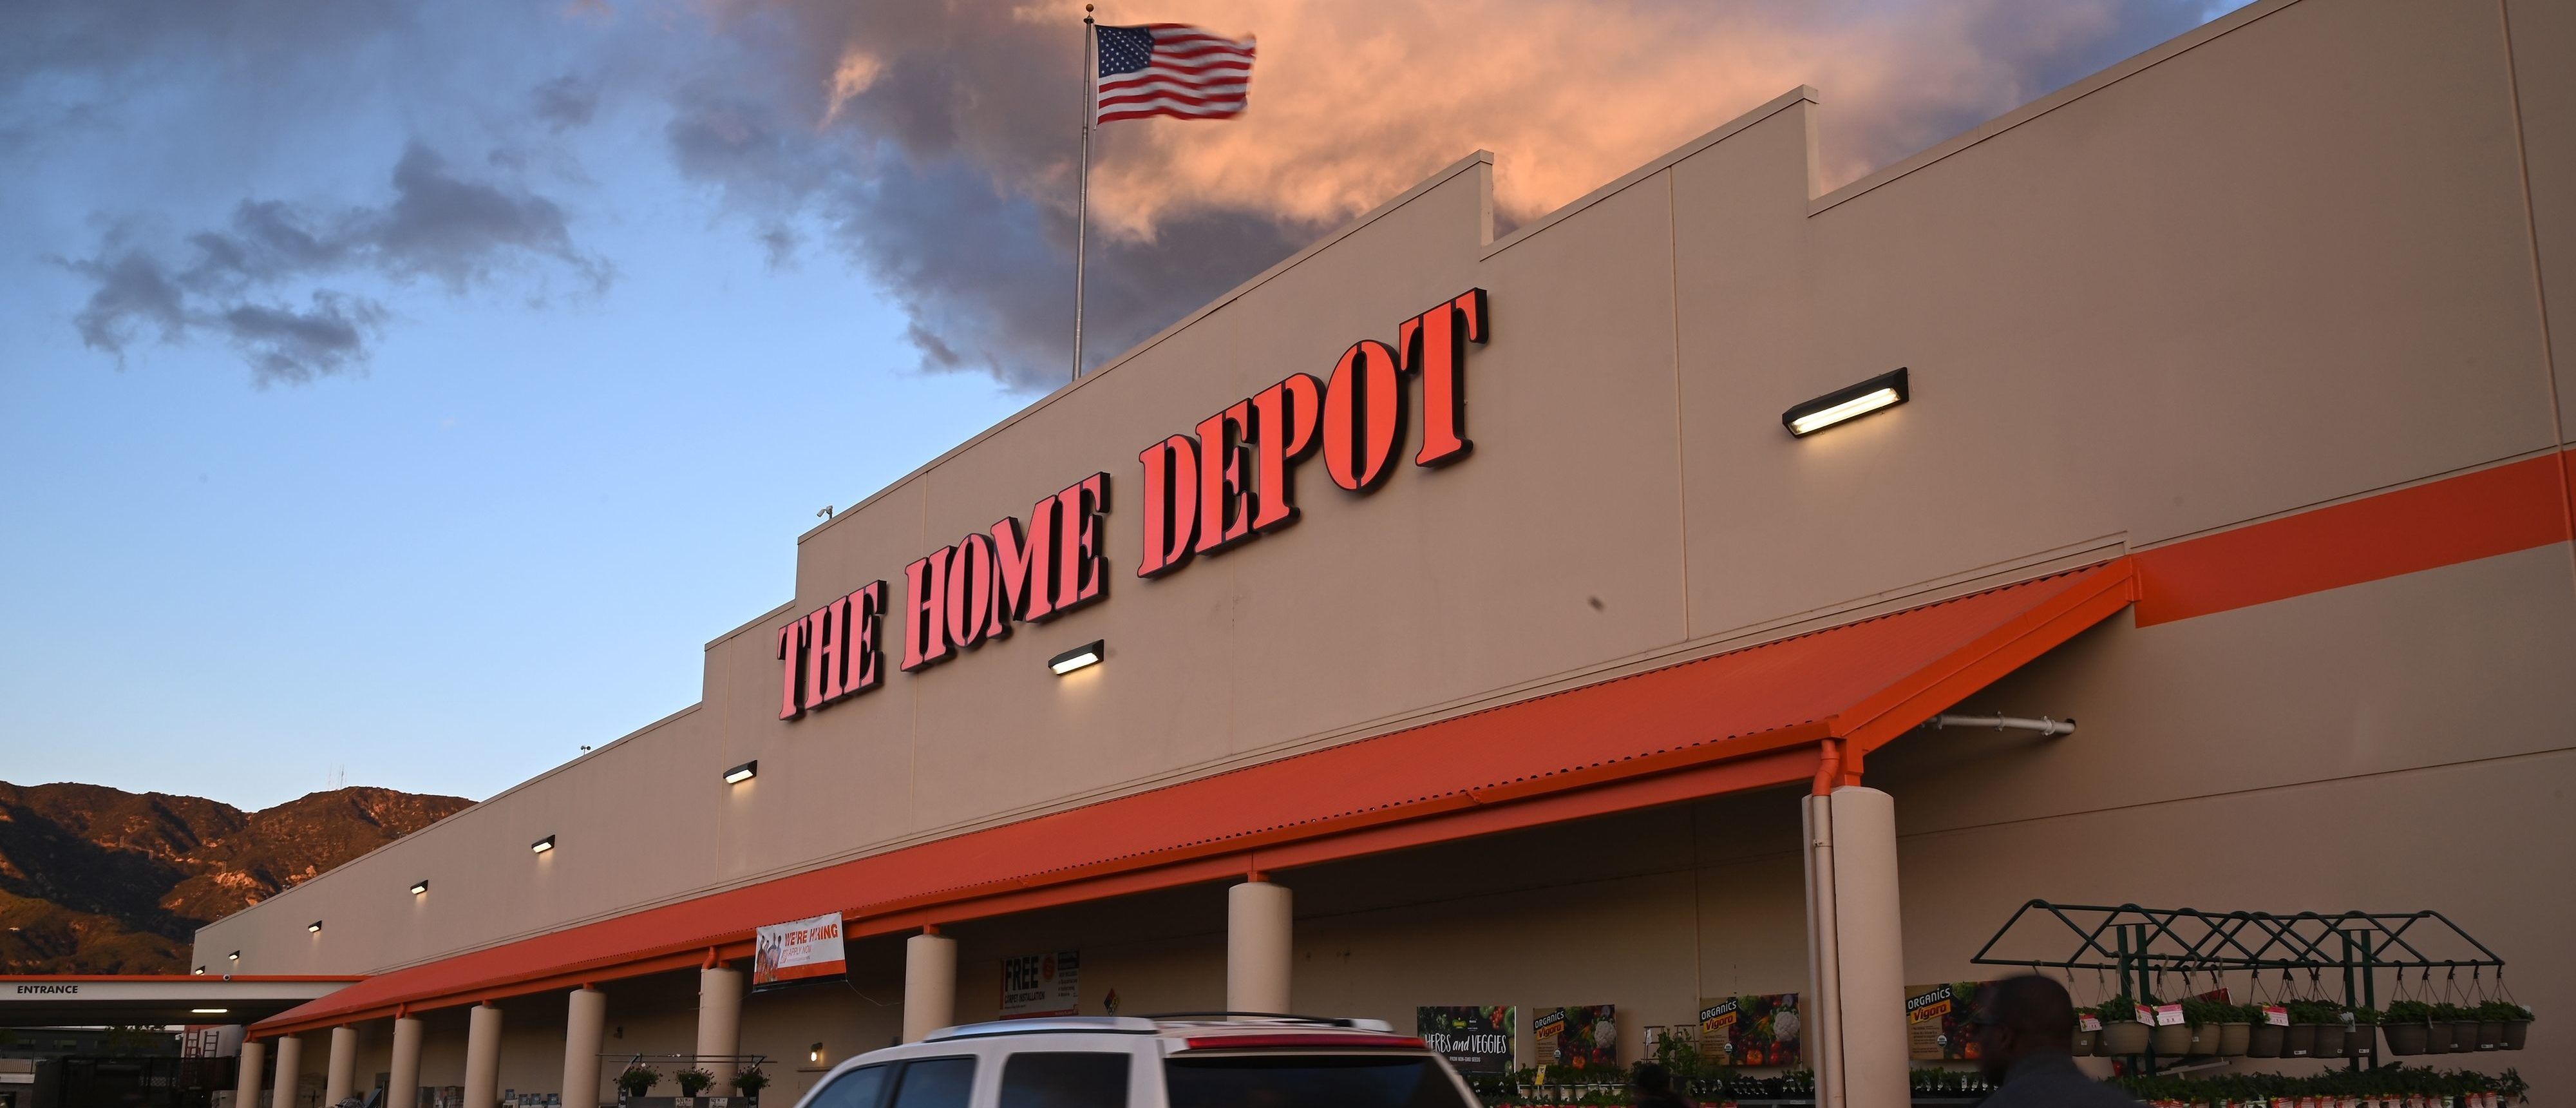 A Home Depot store in Burbank, California is seen on February 18, 2019. - The home improvement retail giant offered a weaker than expected outlook for fiscal 2019 when it reported its fourth quarter earnings February 26, 2019 leading stocks to weaken in early trading.Dow member Home Depot shed 3.2 percent as it projected slightly lower 2019 sales growth compared with last year. (Photo by Robyn Beck / AFP) (Photo credit should read ROBYN BECK/AFP/Getty Images)